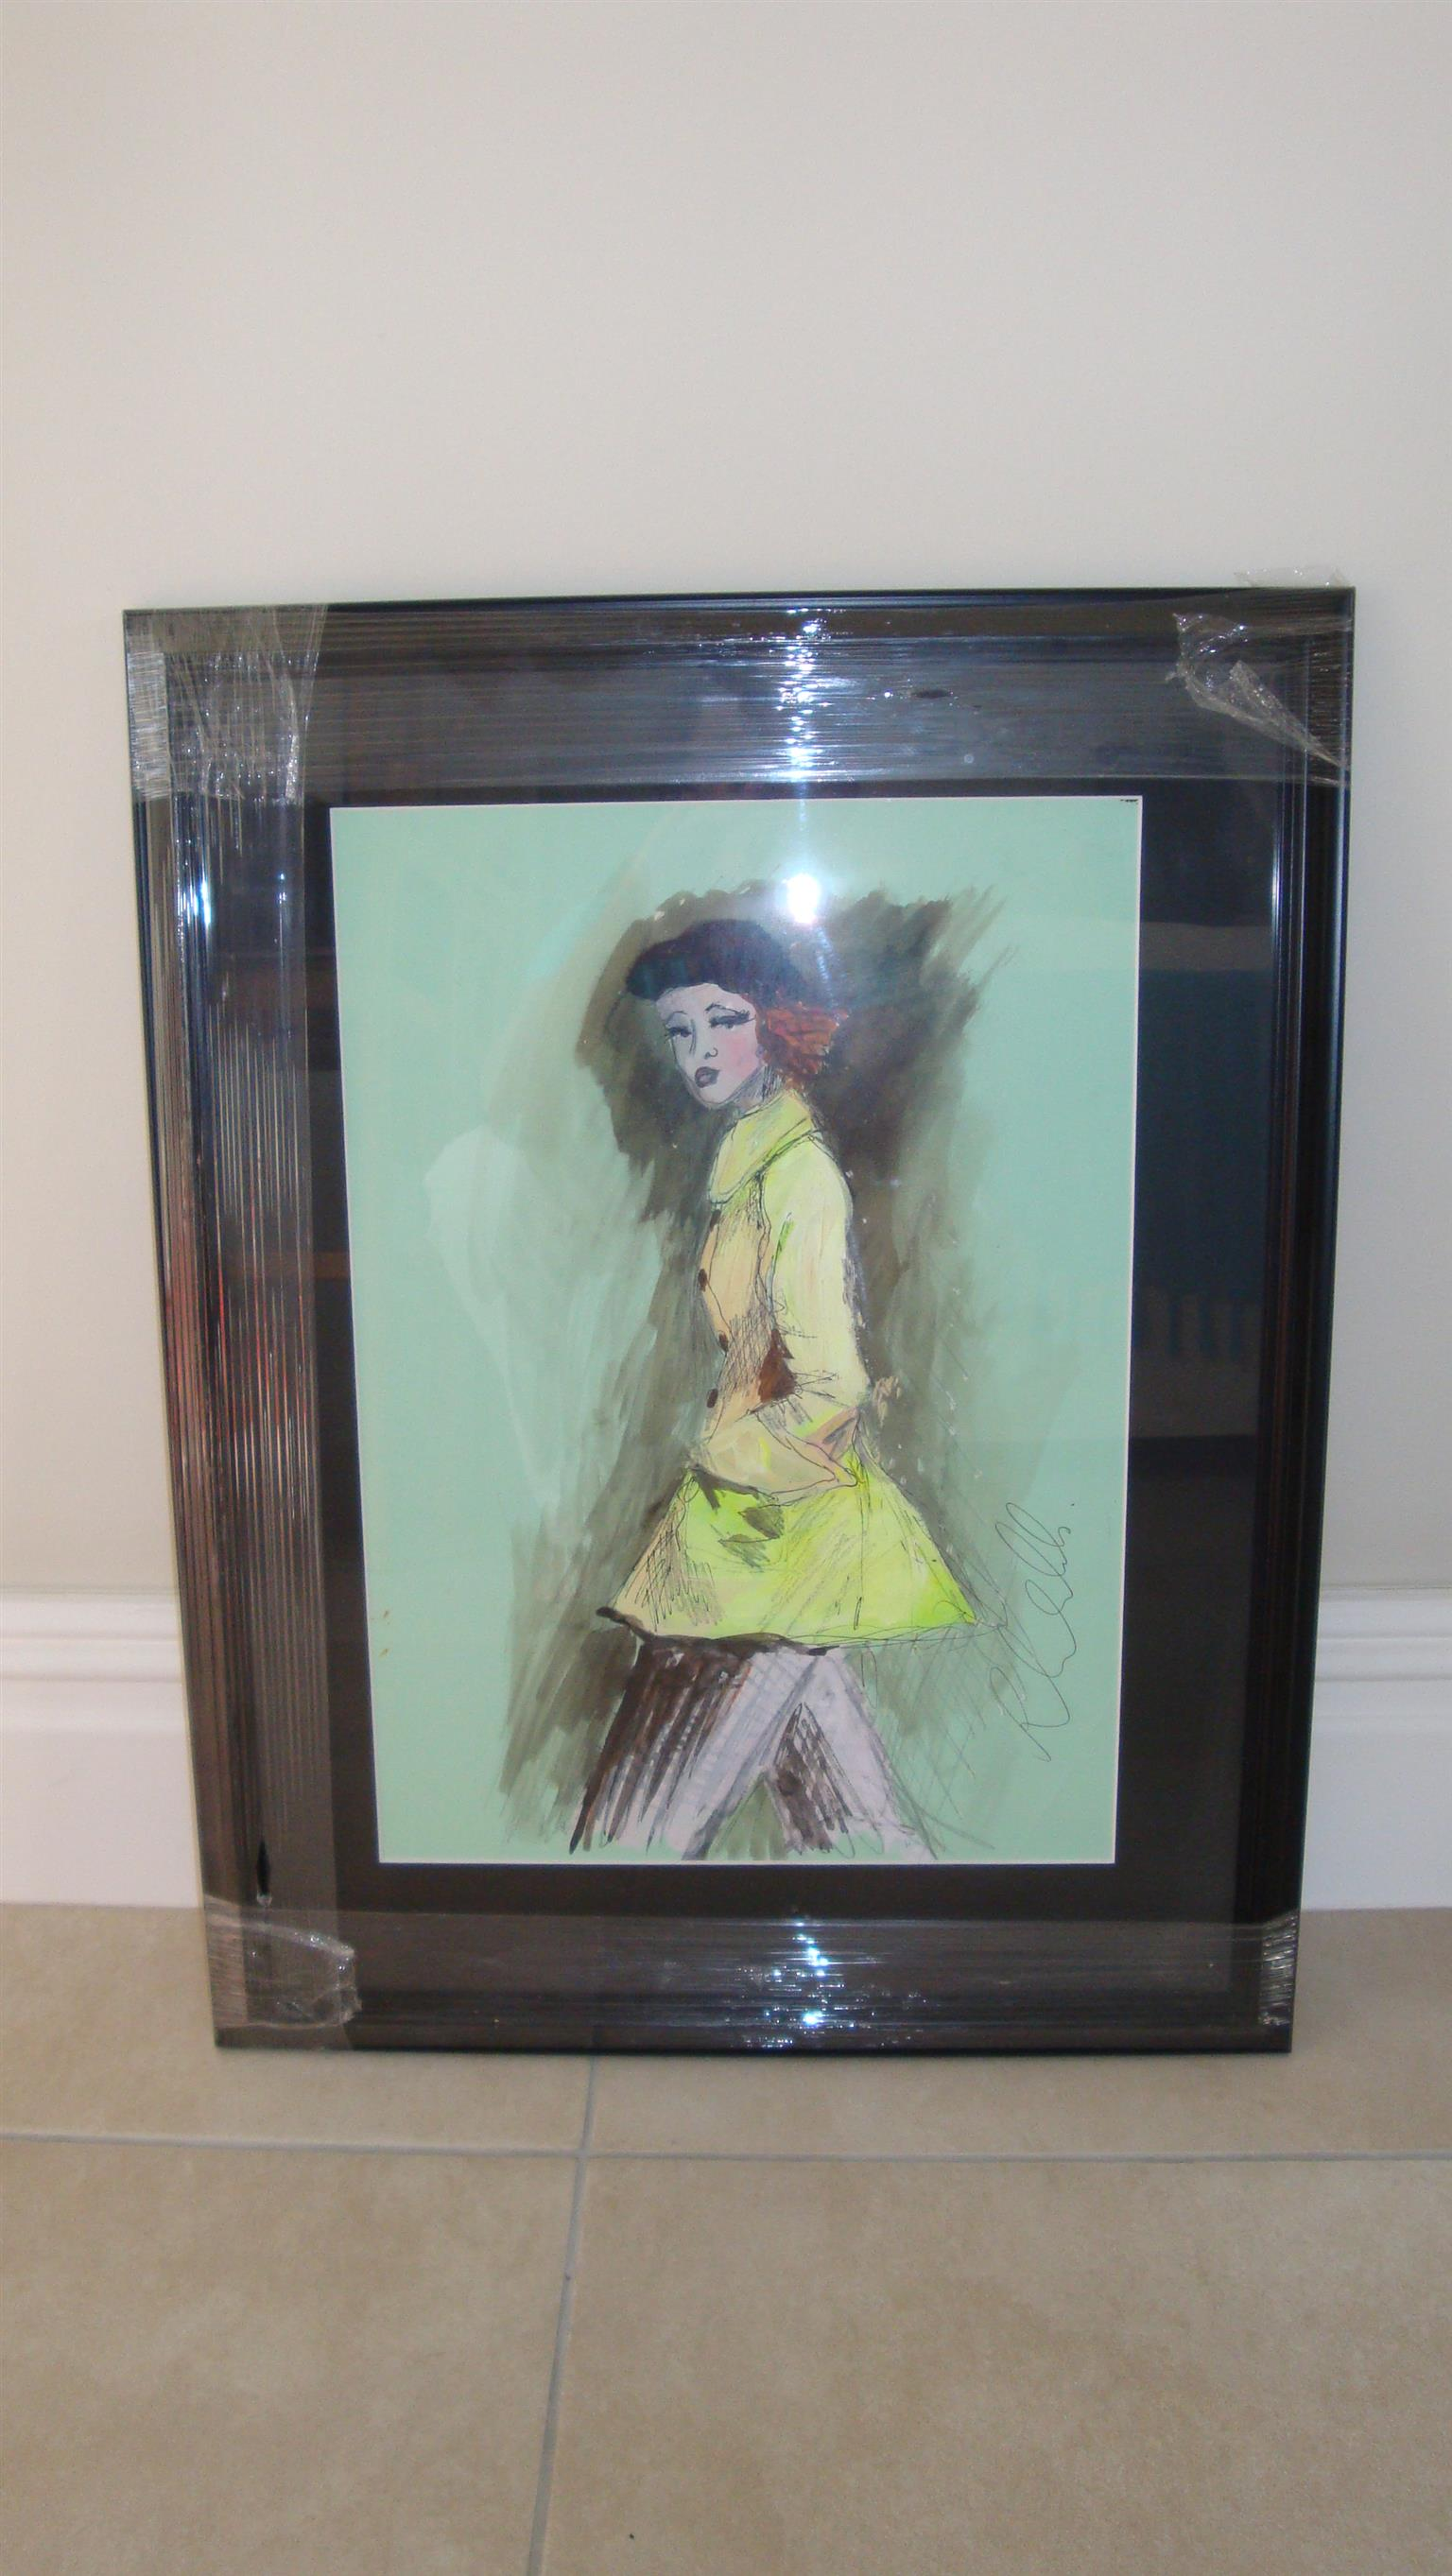 Affordable, original and framed art by Irish artist Ros Webb - girl in yellow jacket